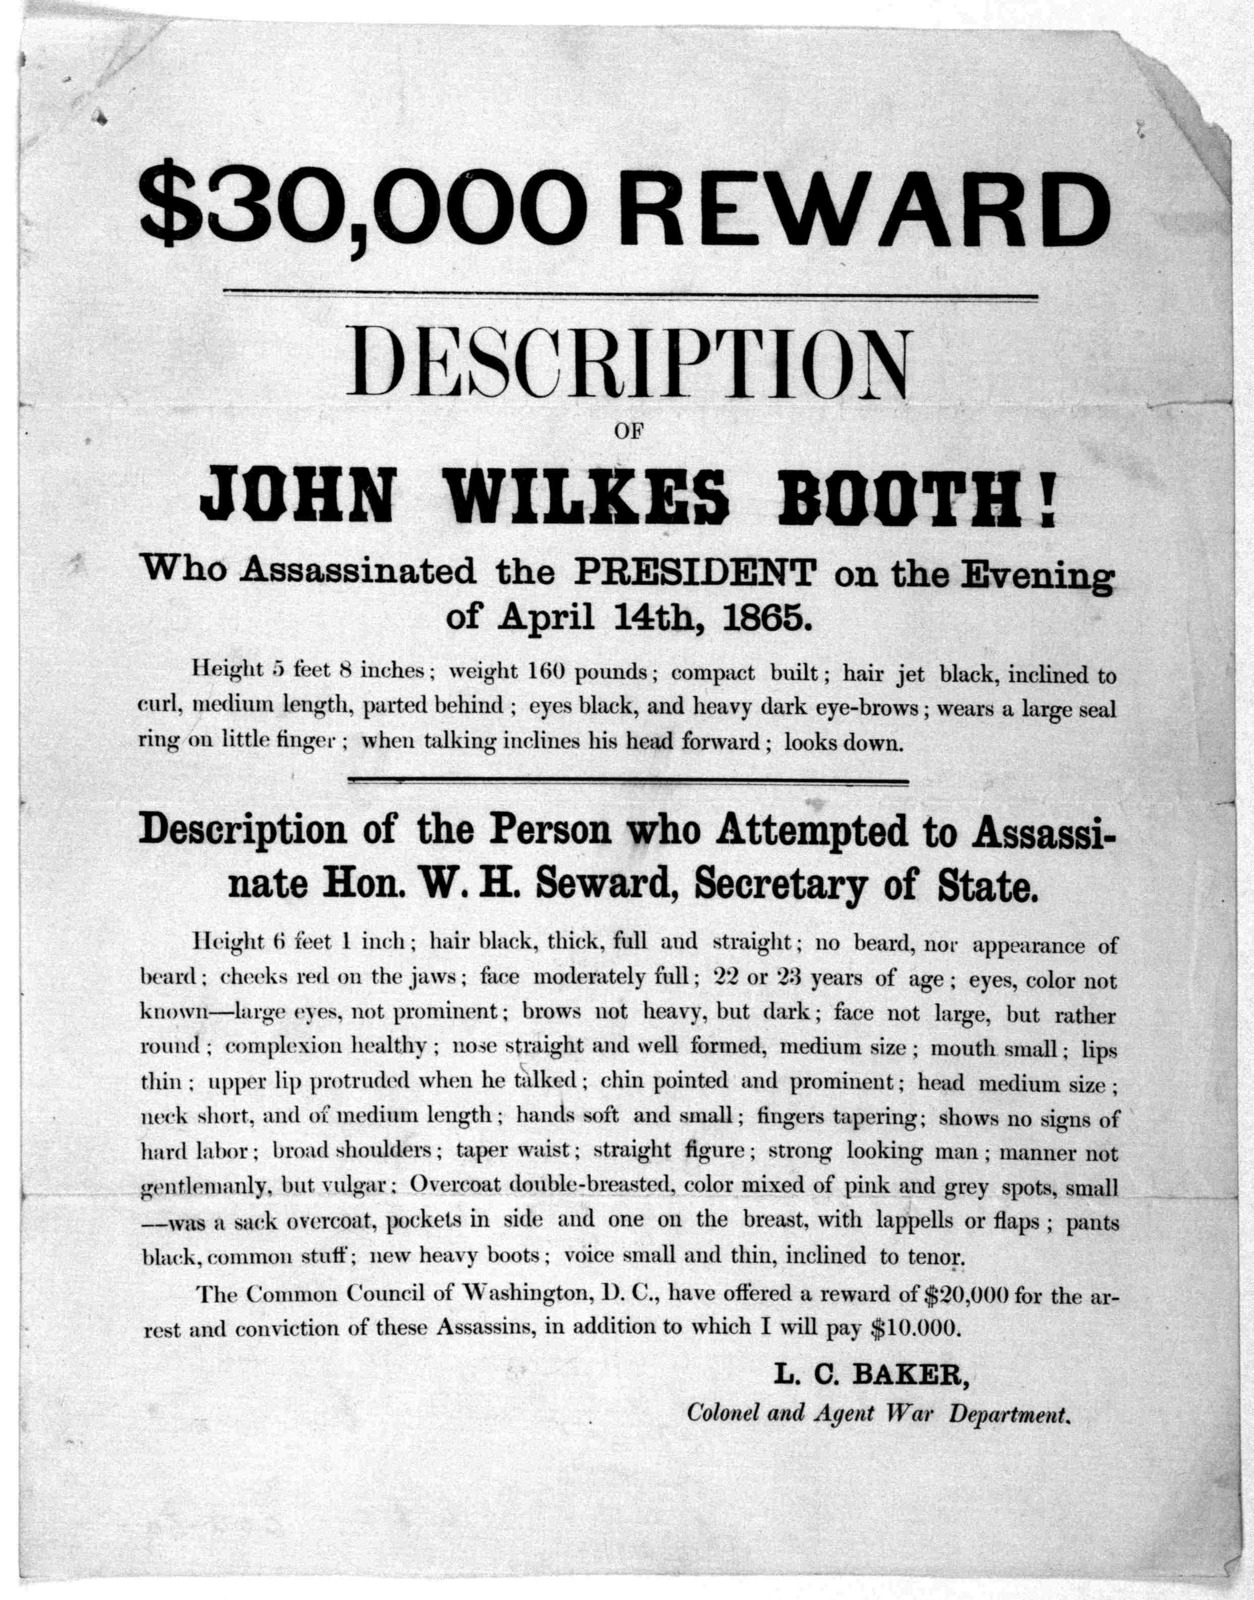 $30,000 reward. Description of John Wilkes Booth! who assassinated the President on the evening of April 14th, 1865 ... Description of the person who attempted to assassinate Hon. W. H. Seward, Secretary of state ... The Common council of